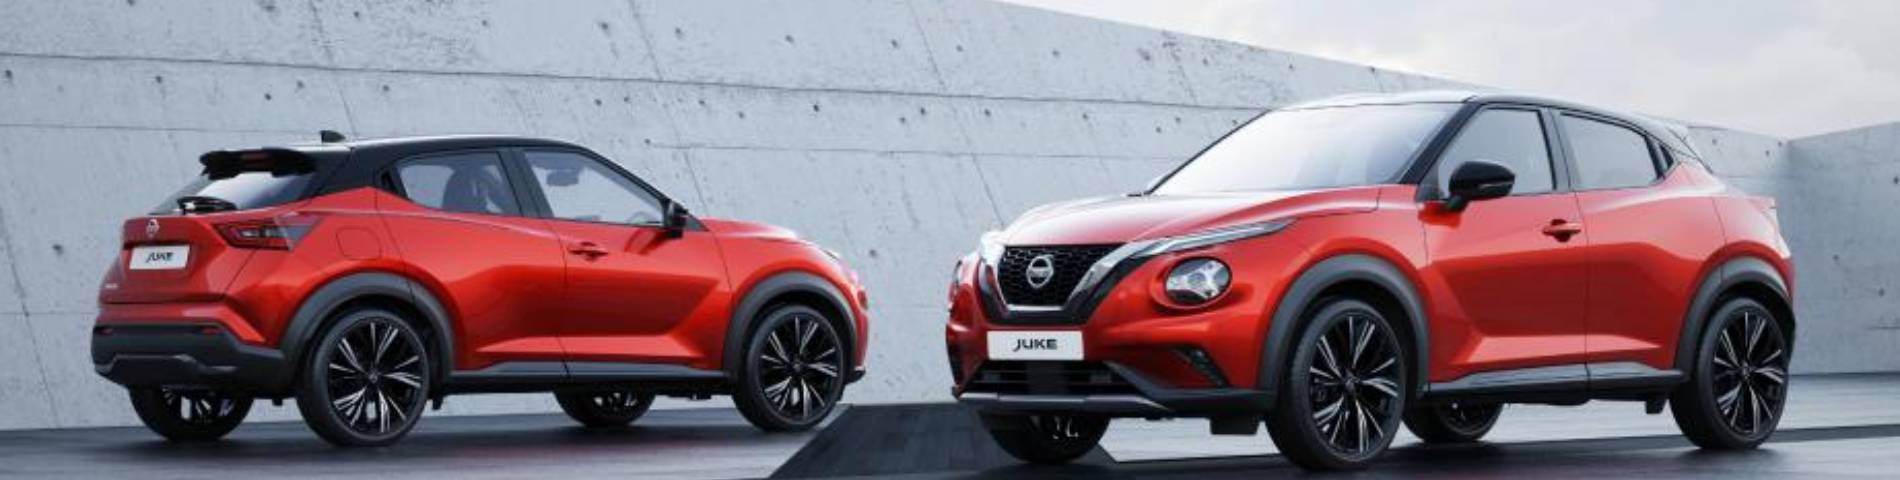 new nissan juke front and rear view